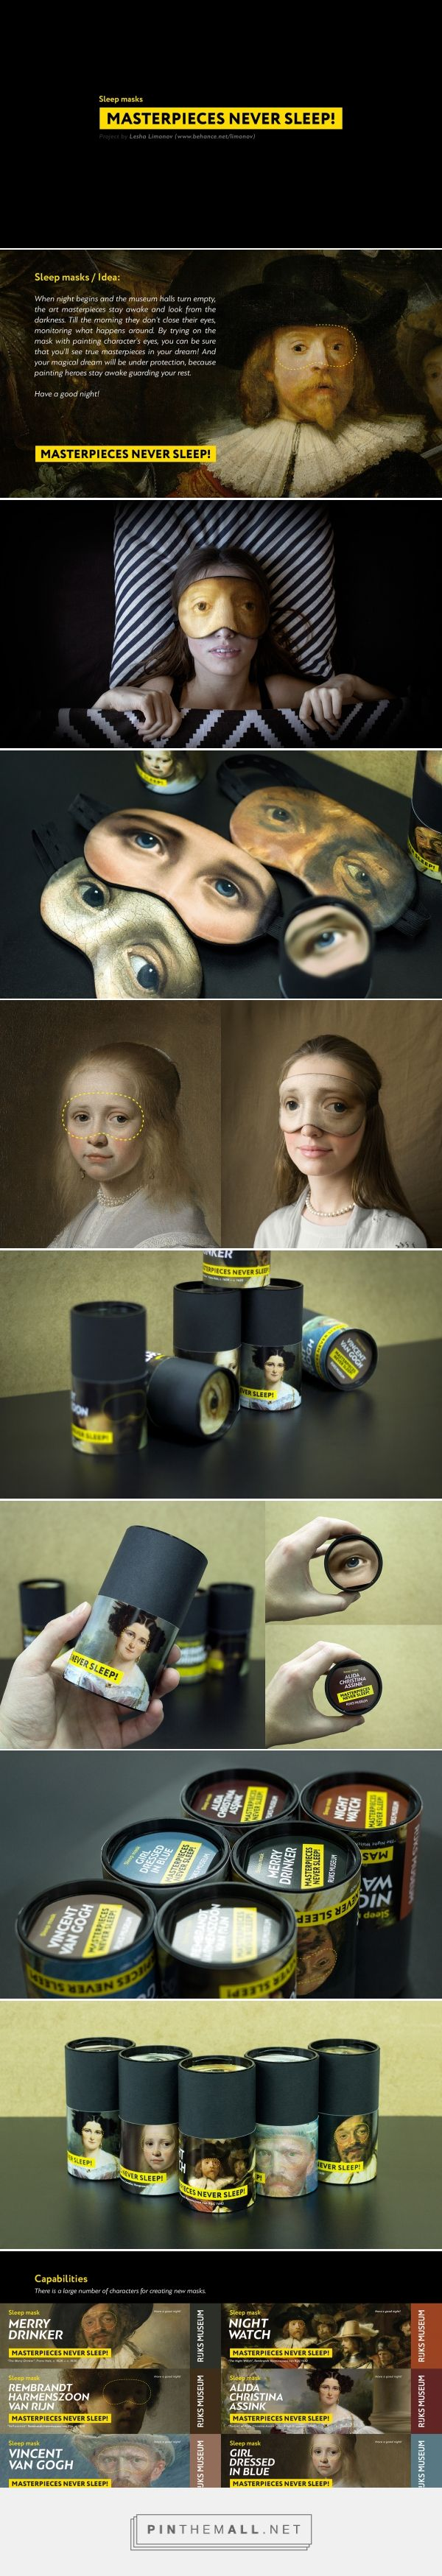 Masterpieces never sleep packaging design by lesha limonov http www